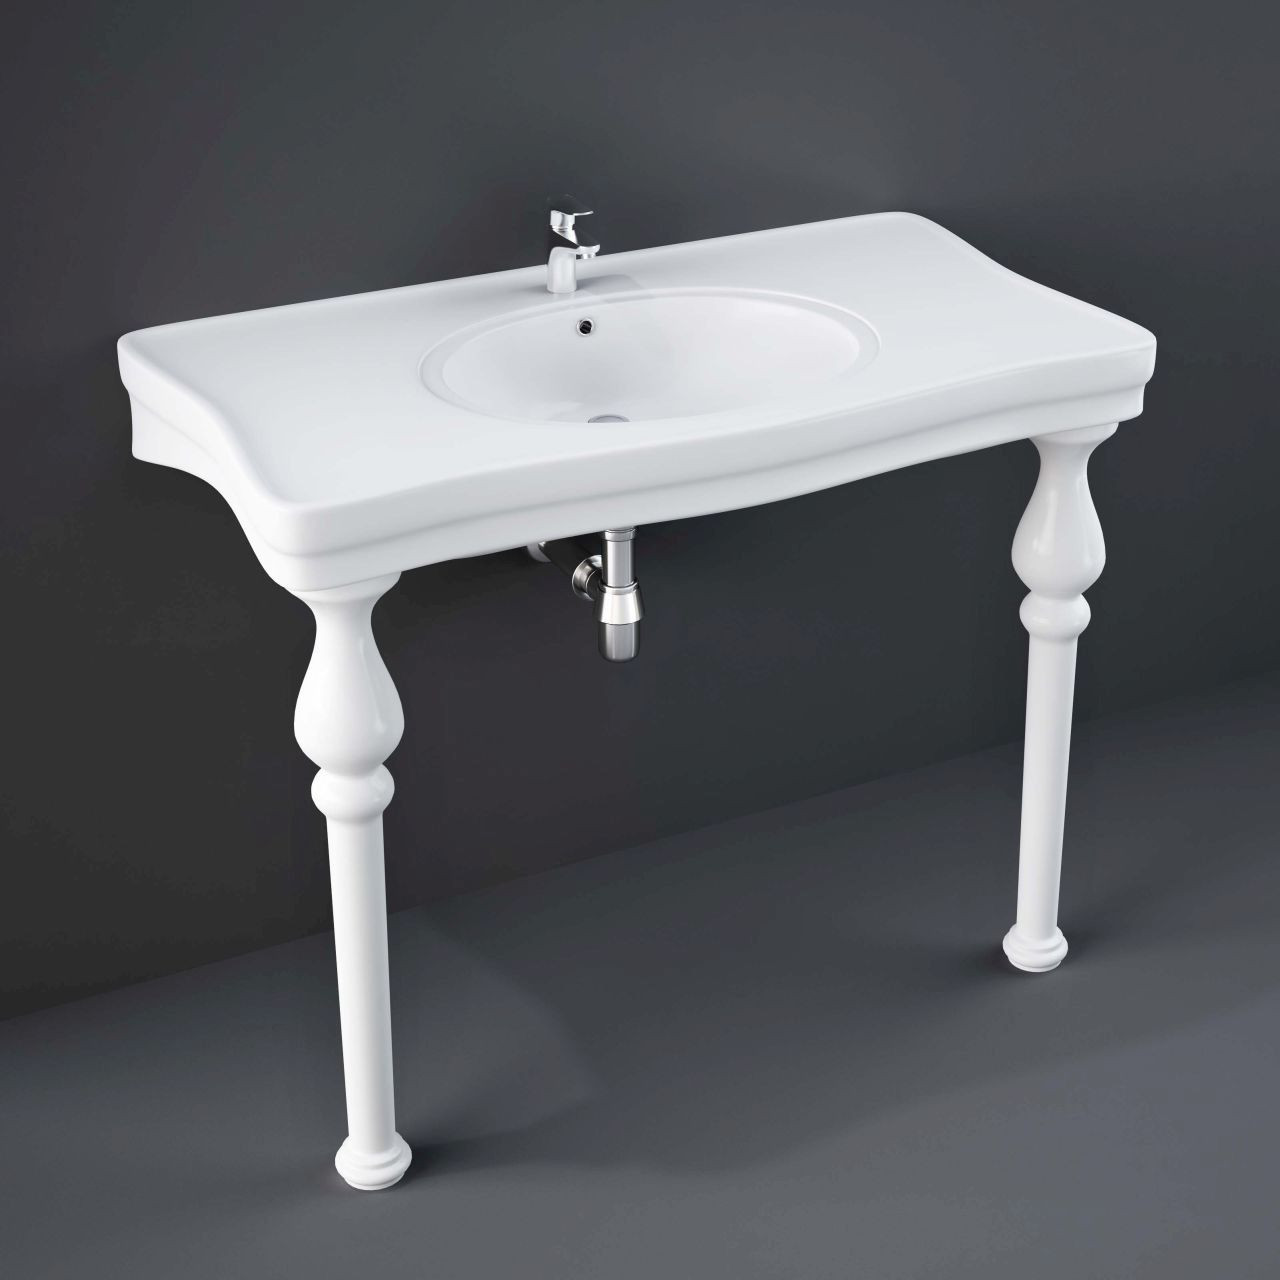 RAK Console Alexandra 1050mm Basin with 3 Tap Holes - CONLARG3